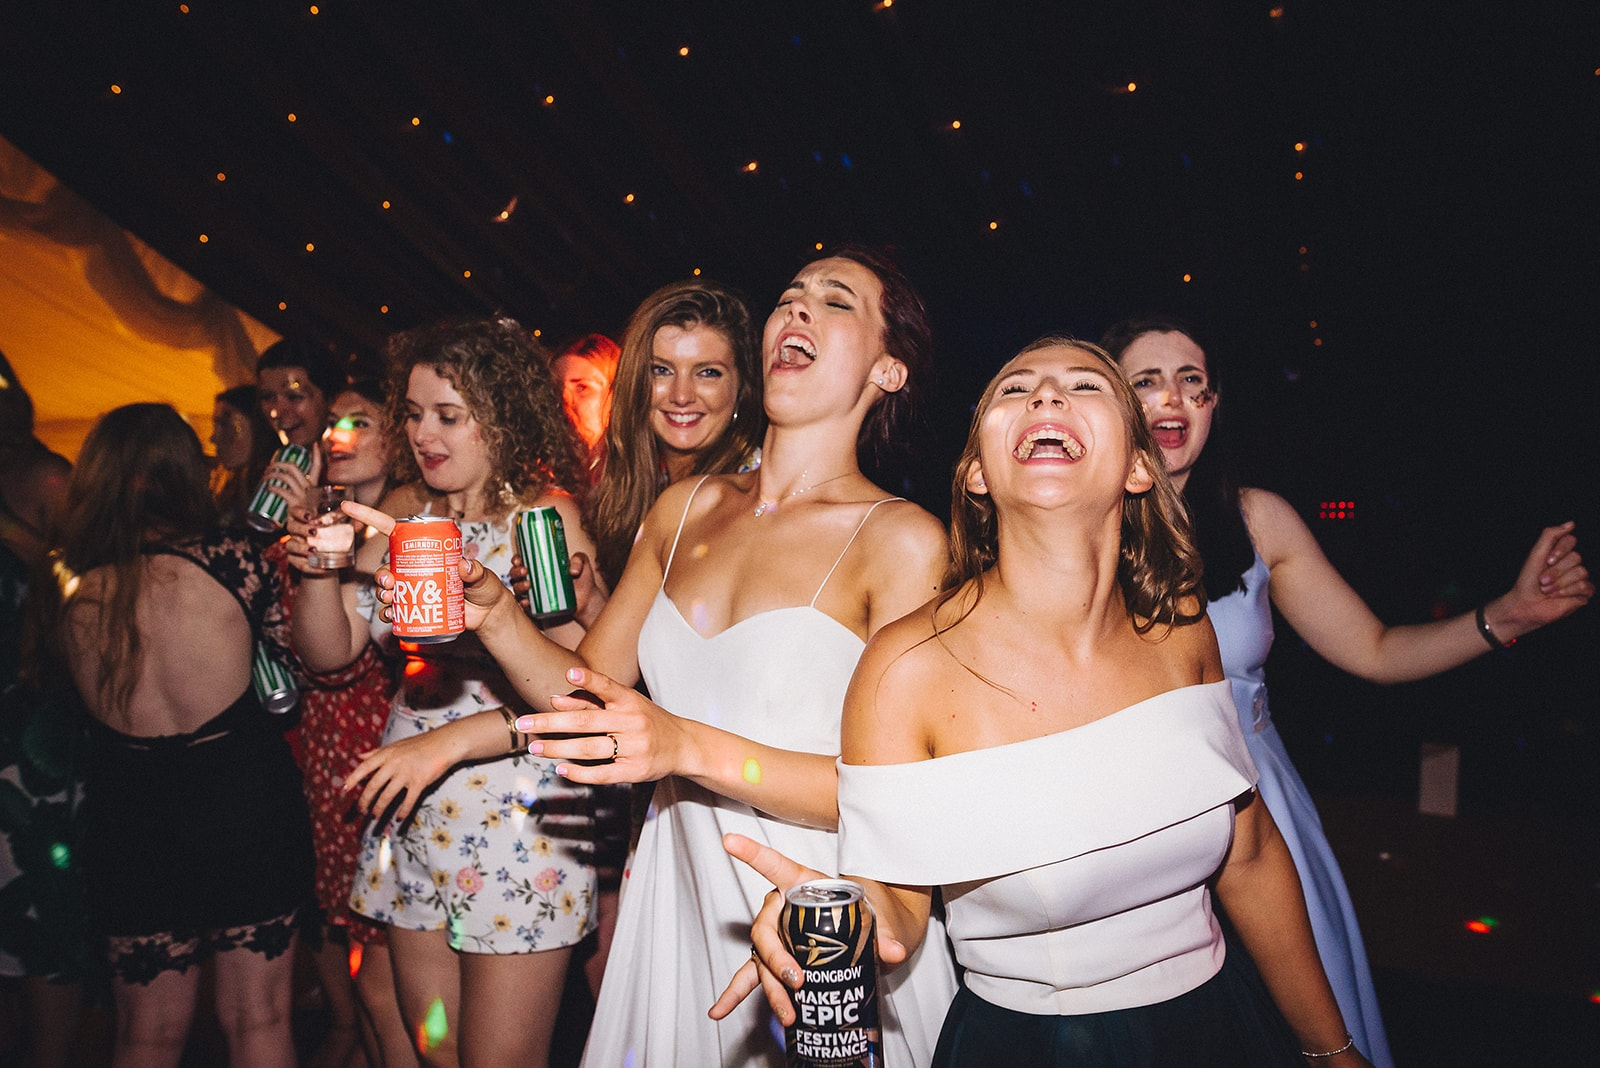 Bride and bridesmaids sing out loud at a wedding party